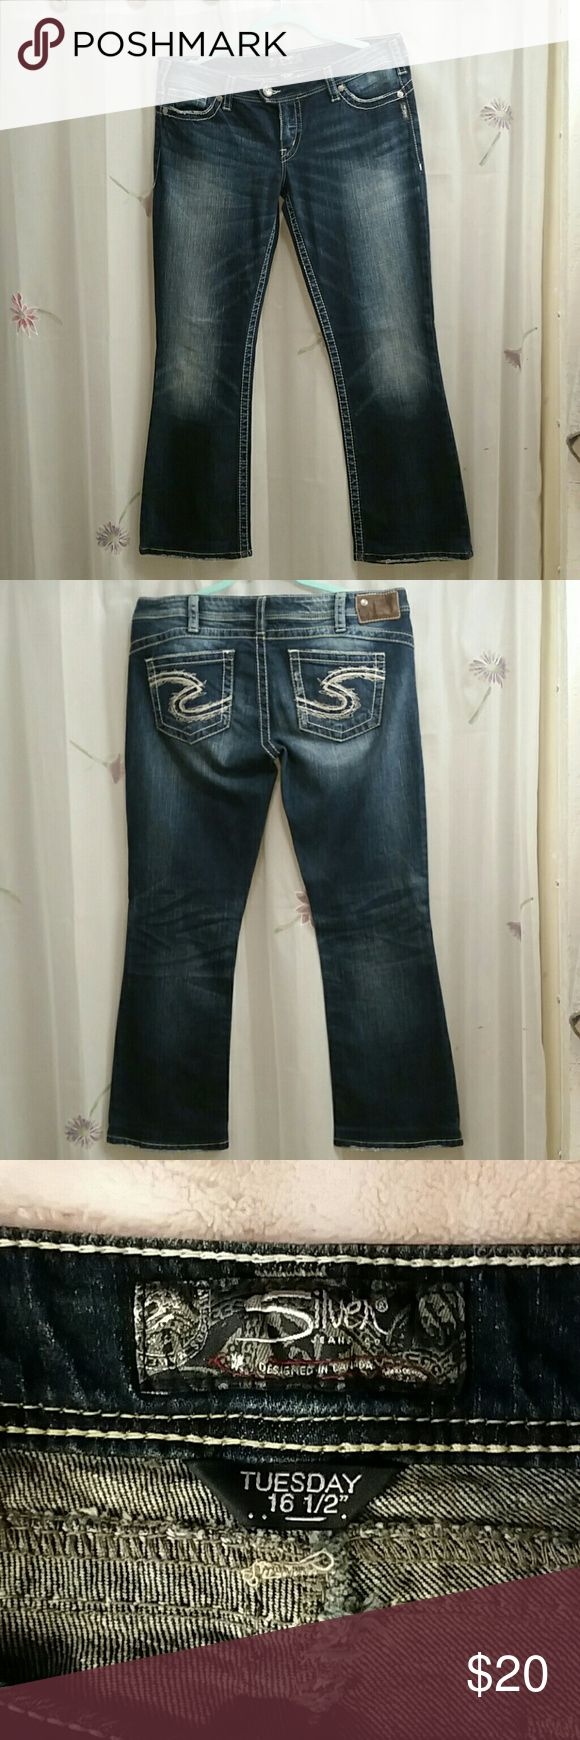 Silver Jean's For sale is a pair of Silver Tuesday  low rise jeans size 33 and custom-tailored to a 29 inseam  they were altered at the Buckle these have been worn a handful of times so they are in excellent used condition Silver Jeans Jeans Straight Leg